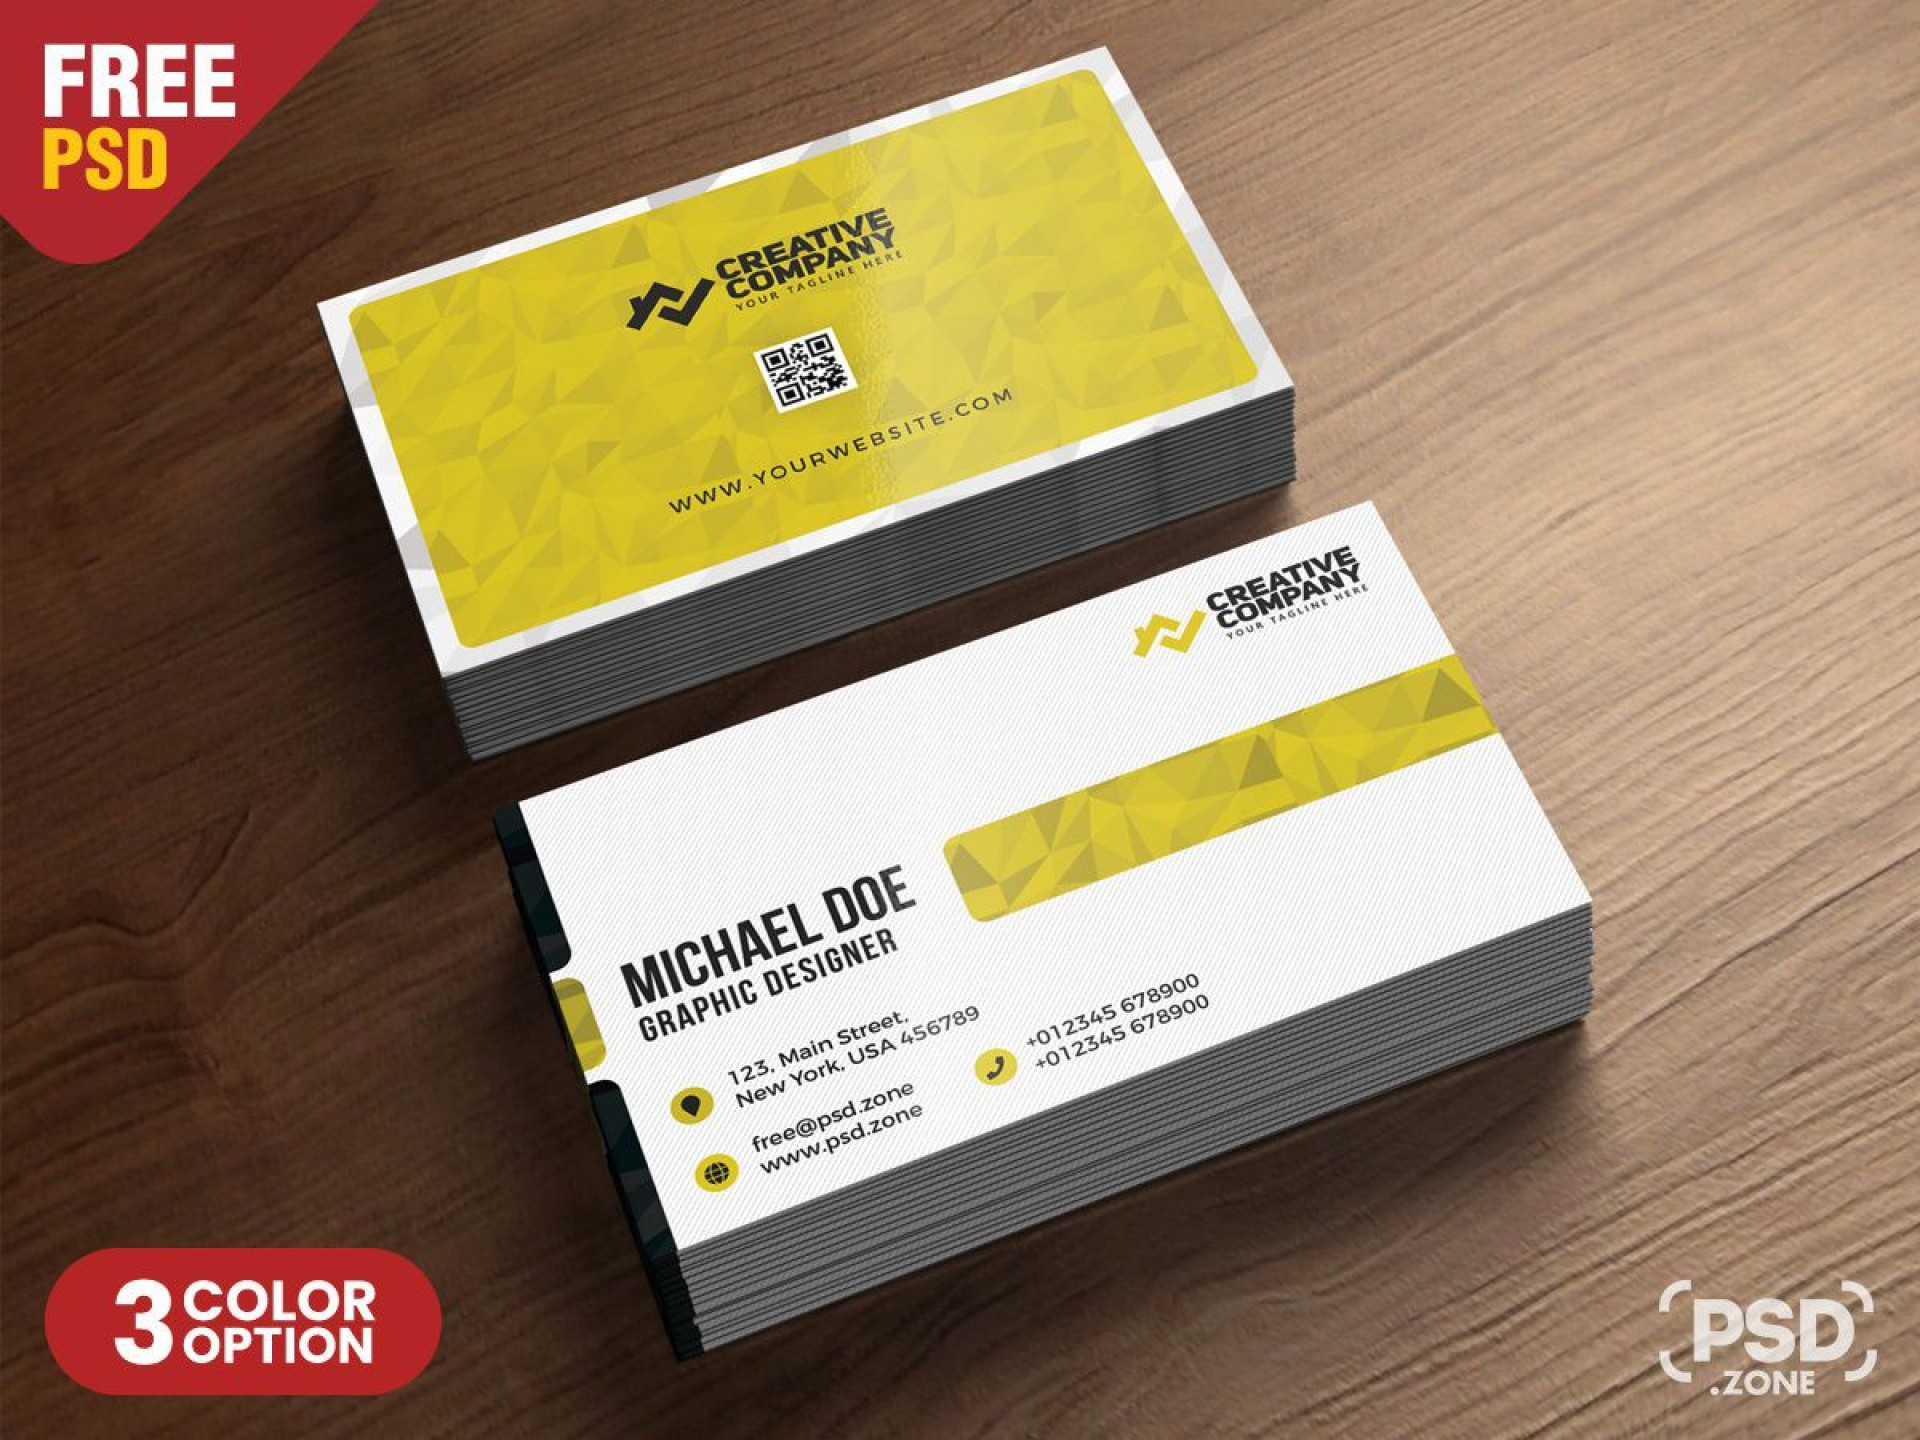 009 Amazing Simple Visiting Card Design Free Download Highest Clarity  Busines Psd Coreldraw File1920